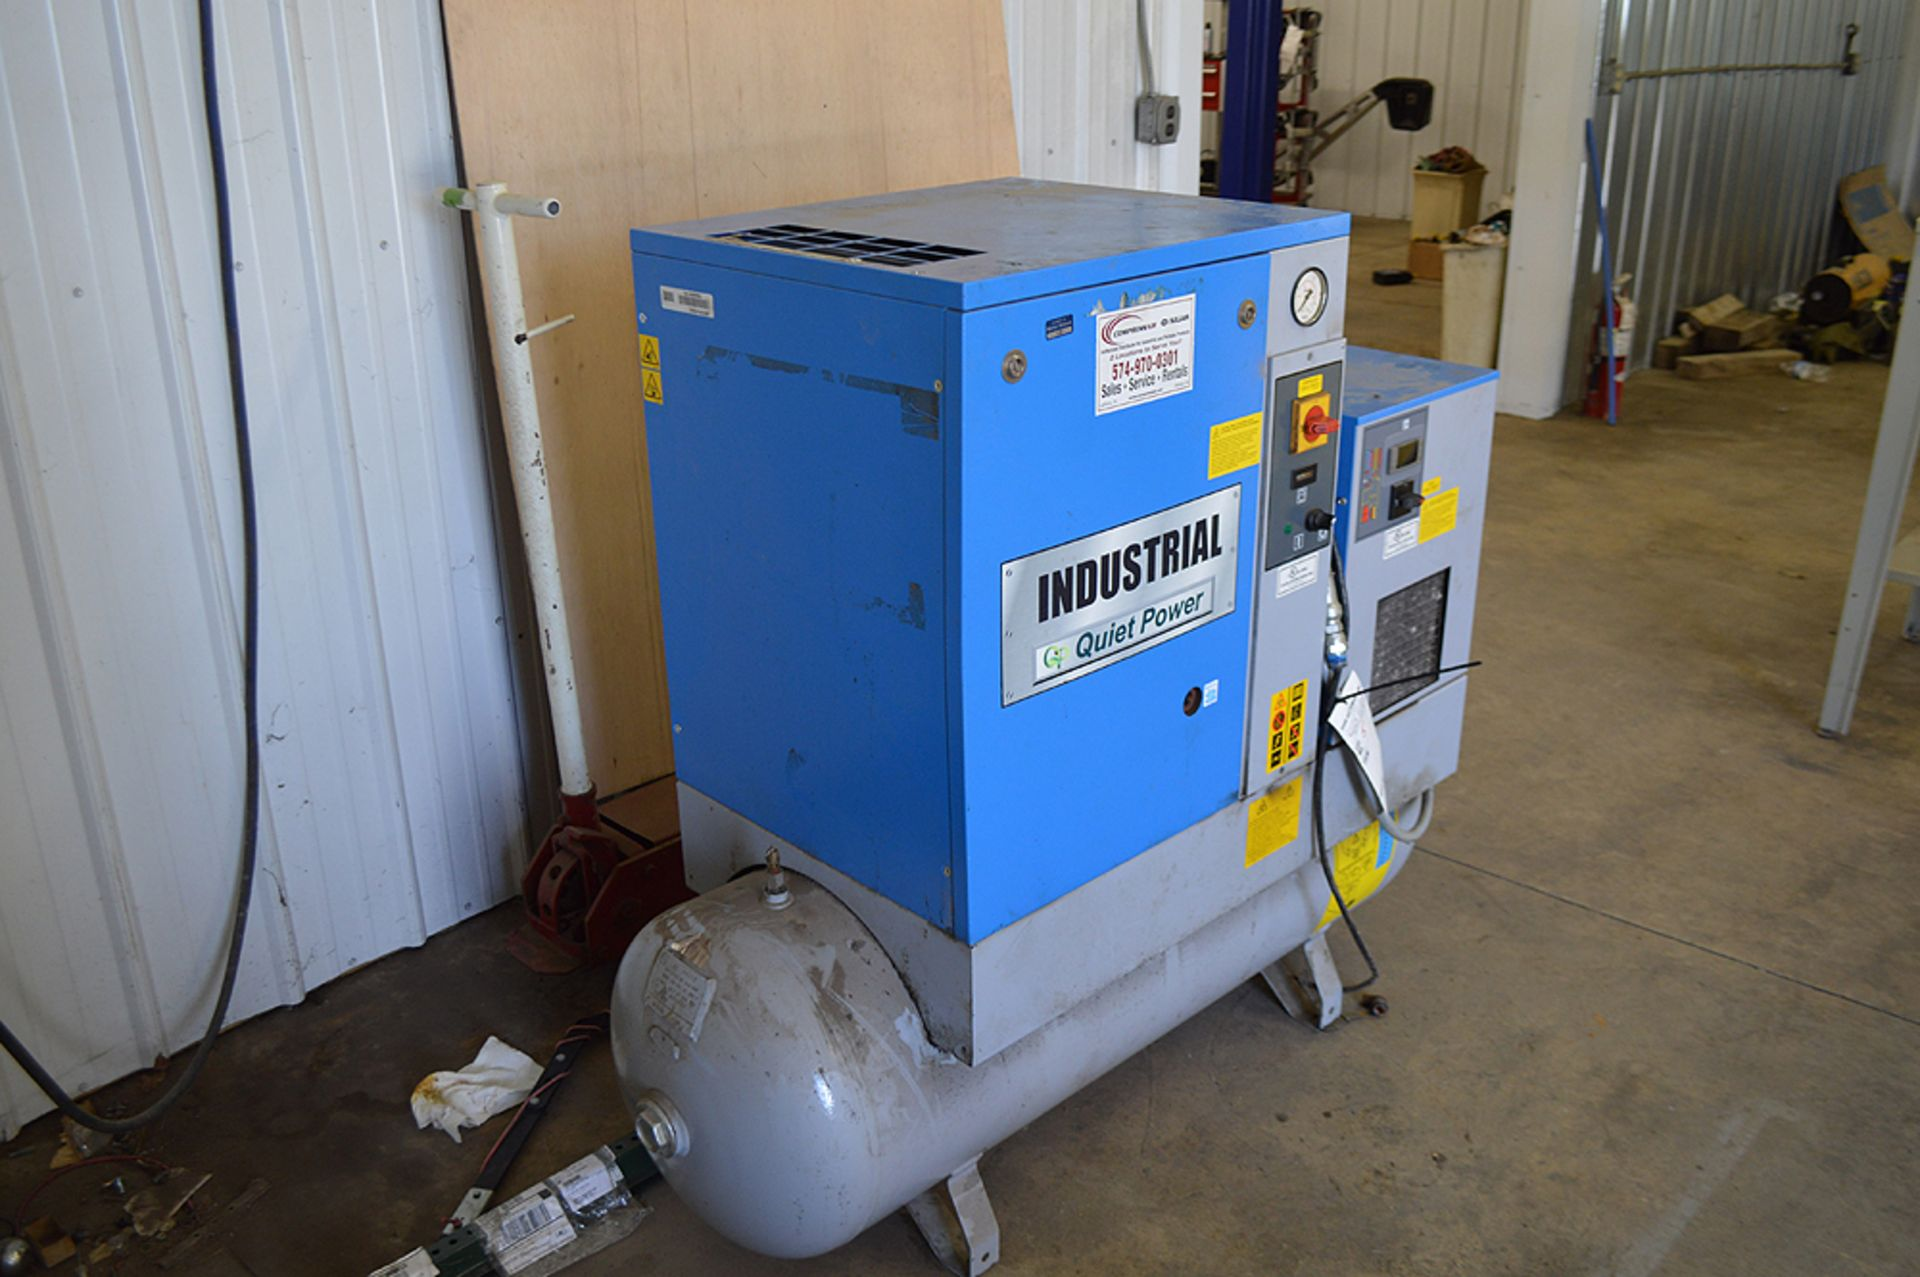 Lot 5 - INDUSTRIAL QUIET POWER 2015 SINGLE PHASE AIR COMPRESSOR, 5 HP